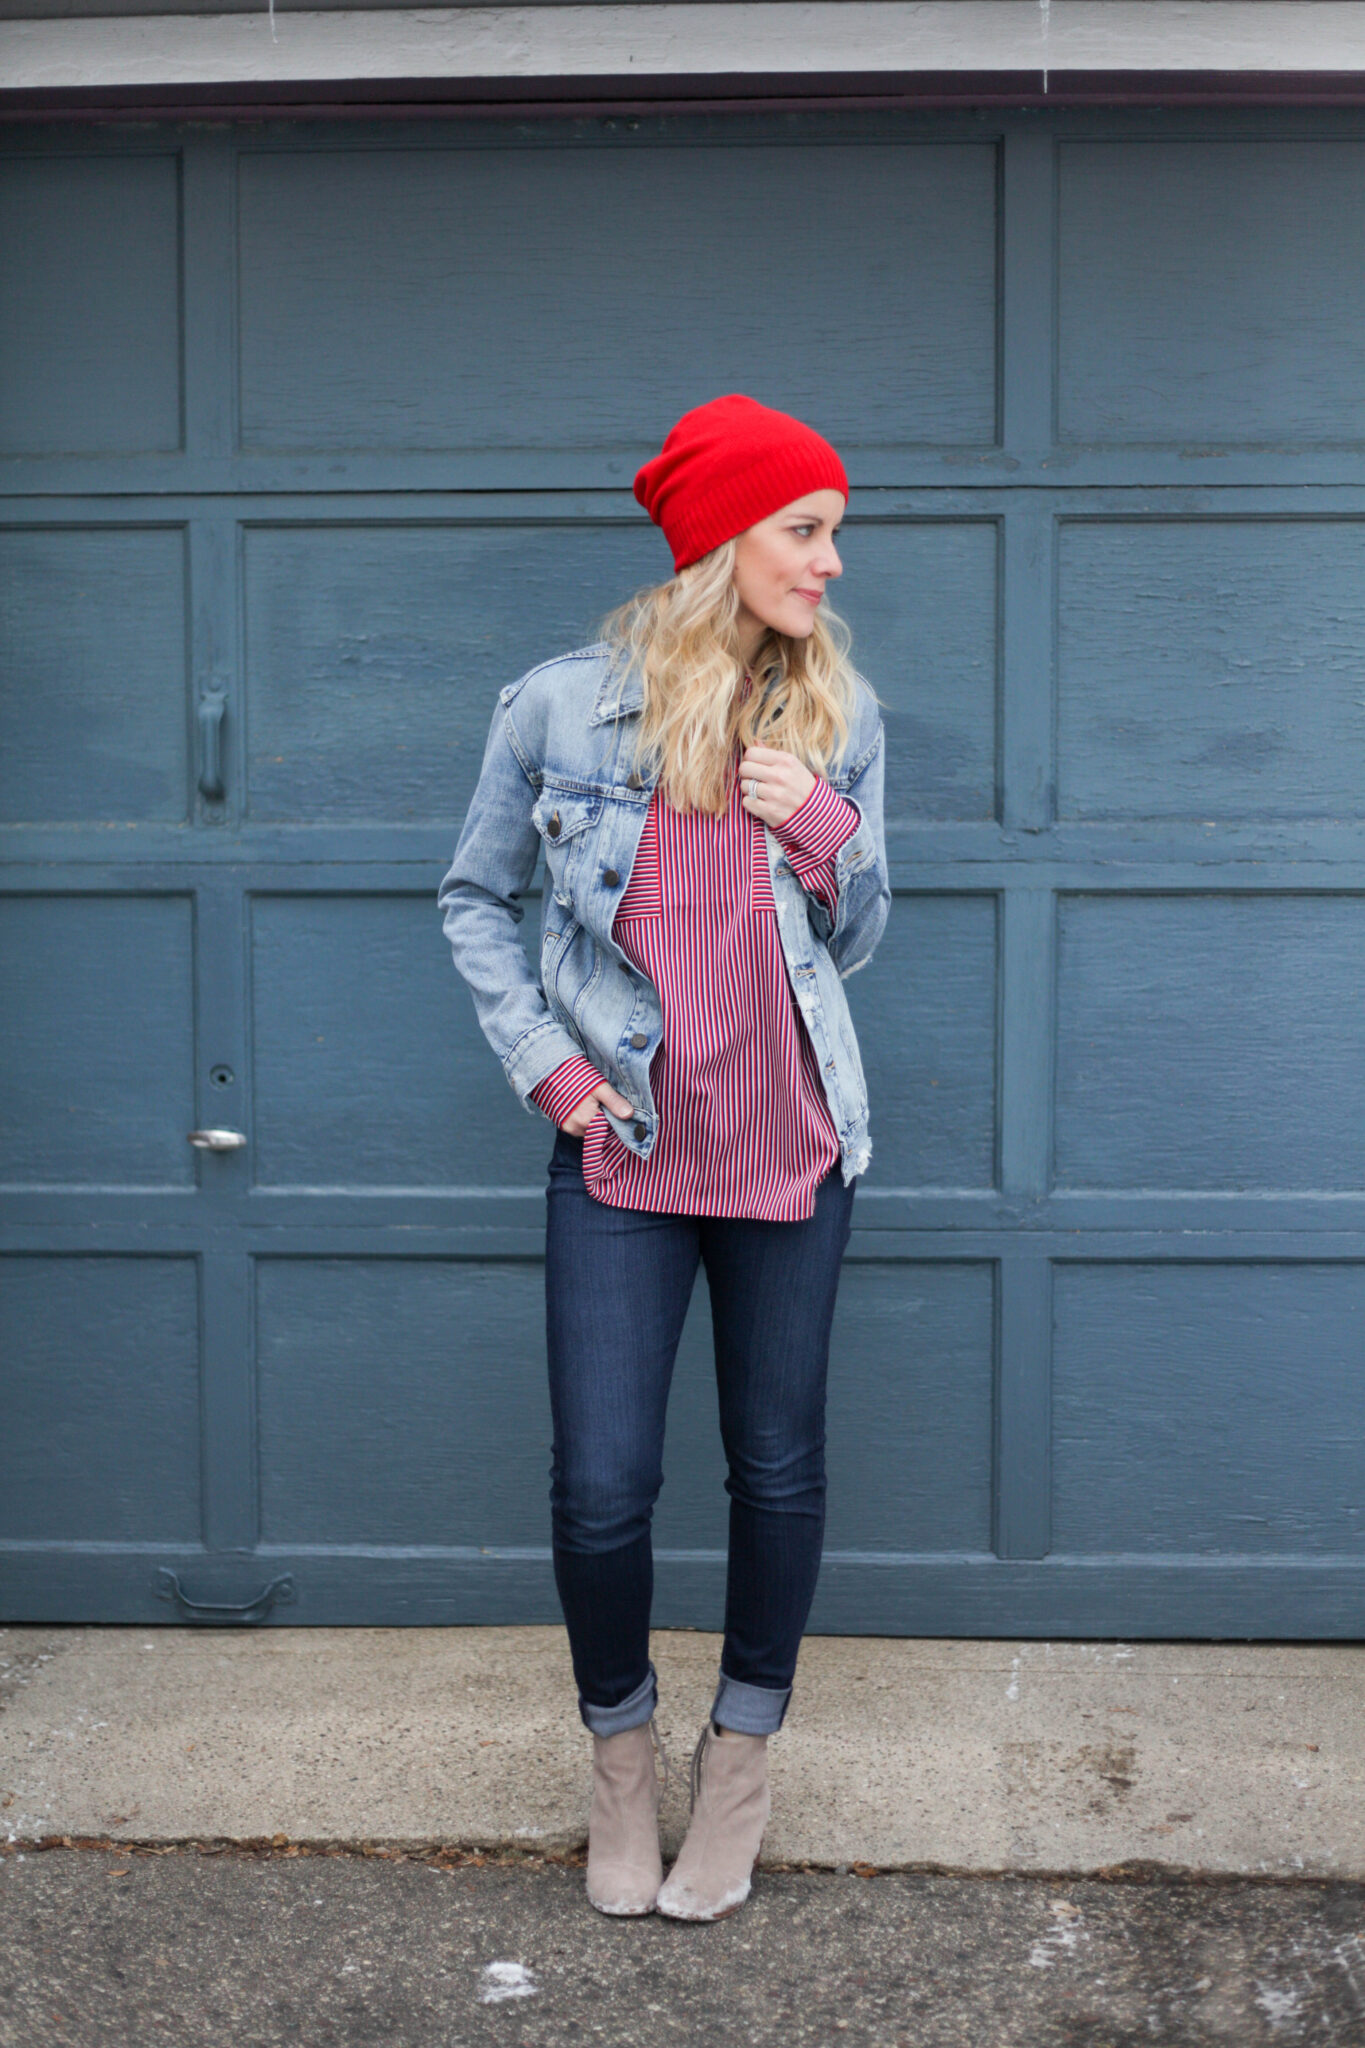 Denim on denim outfit - the Canadian tuxedo!